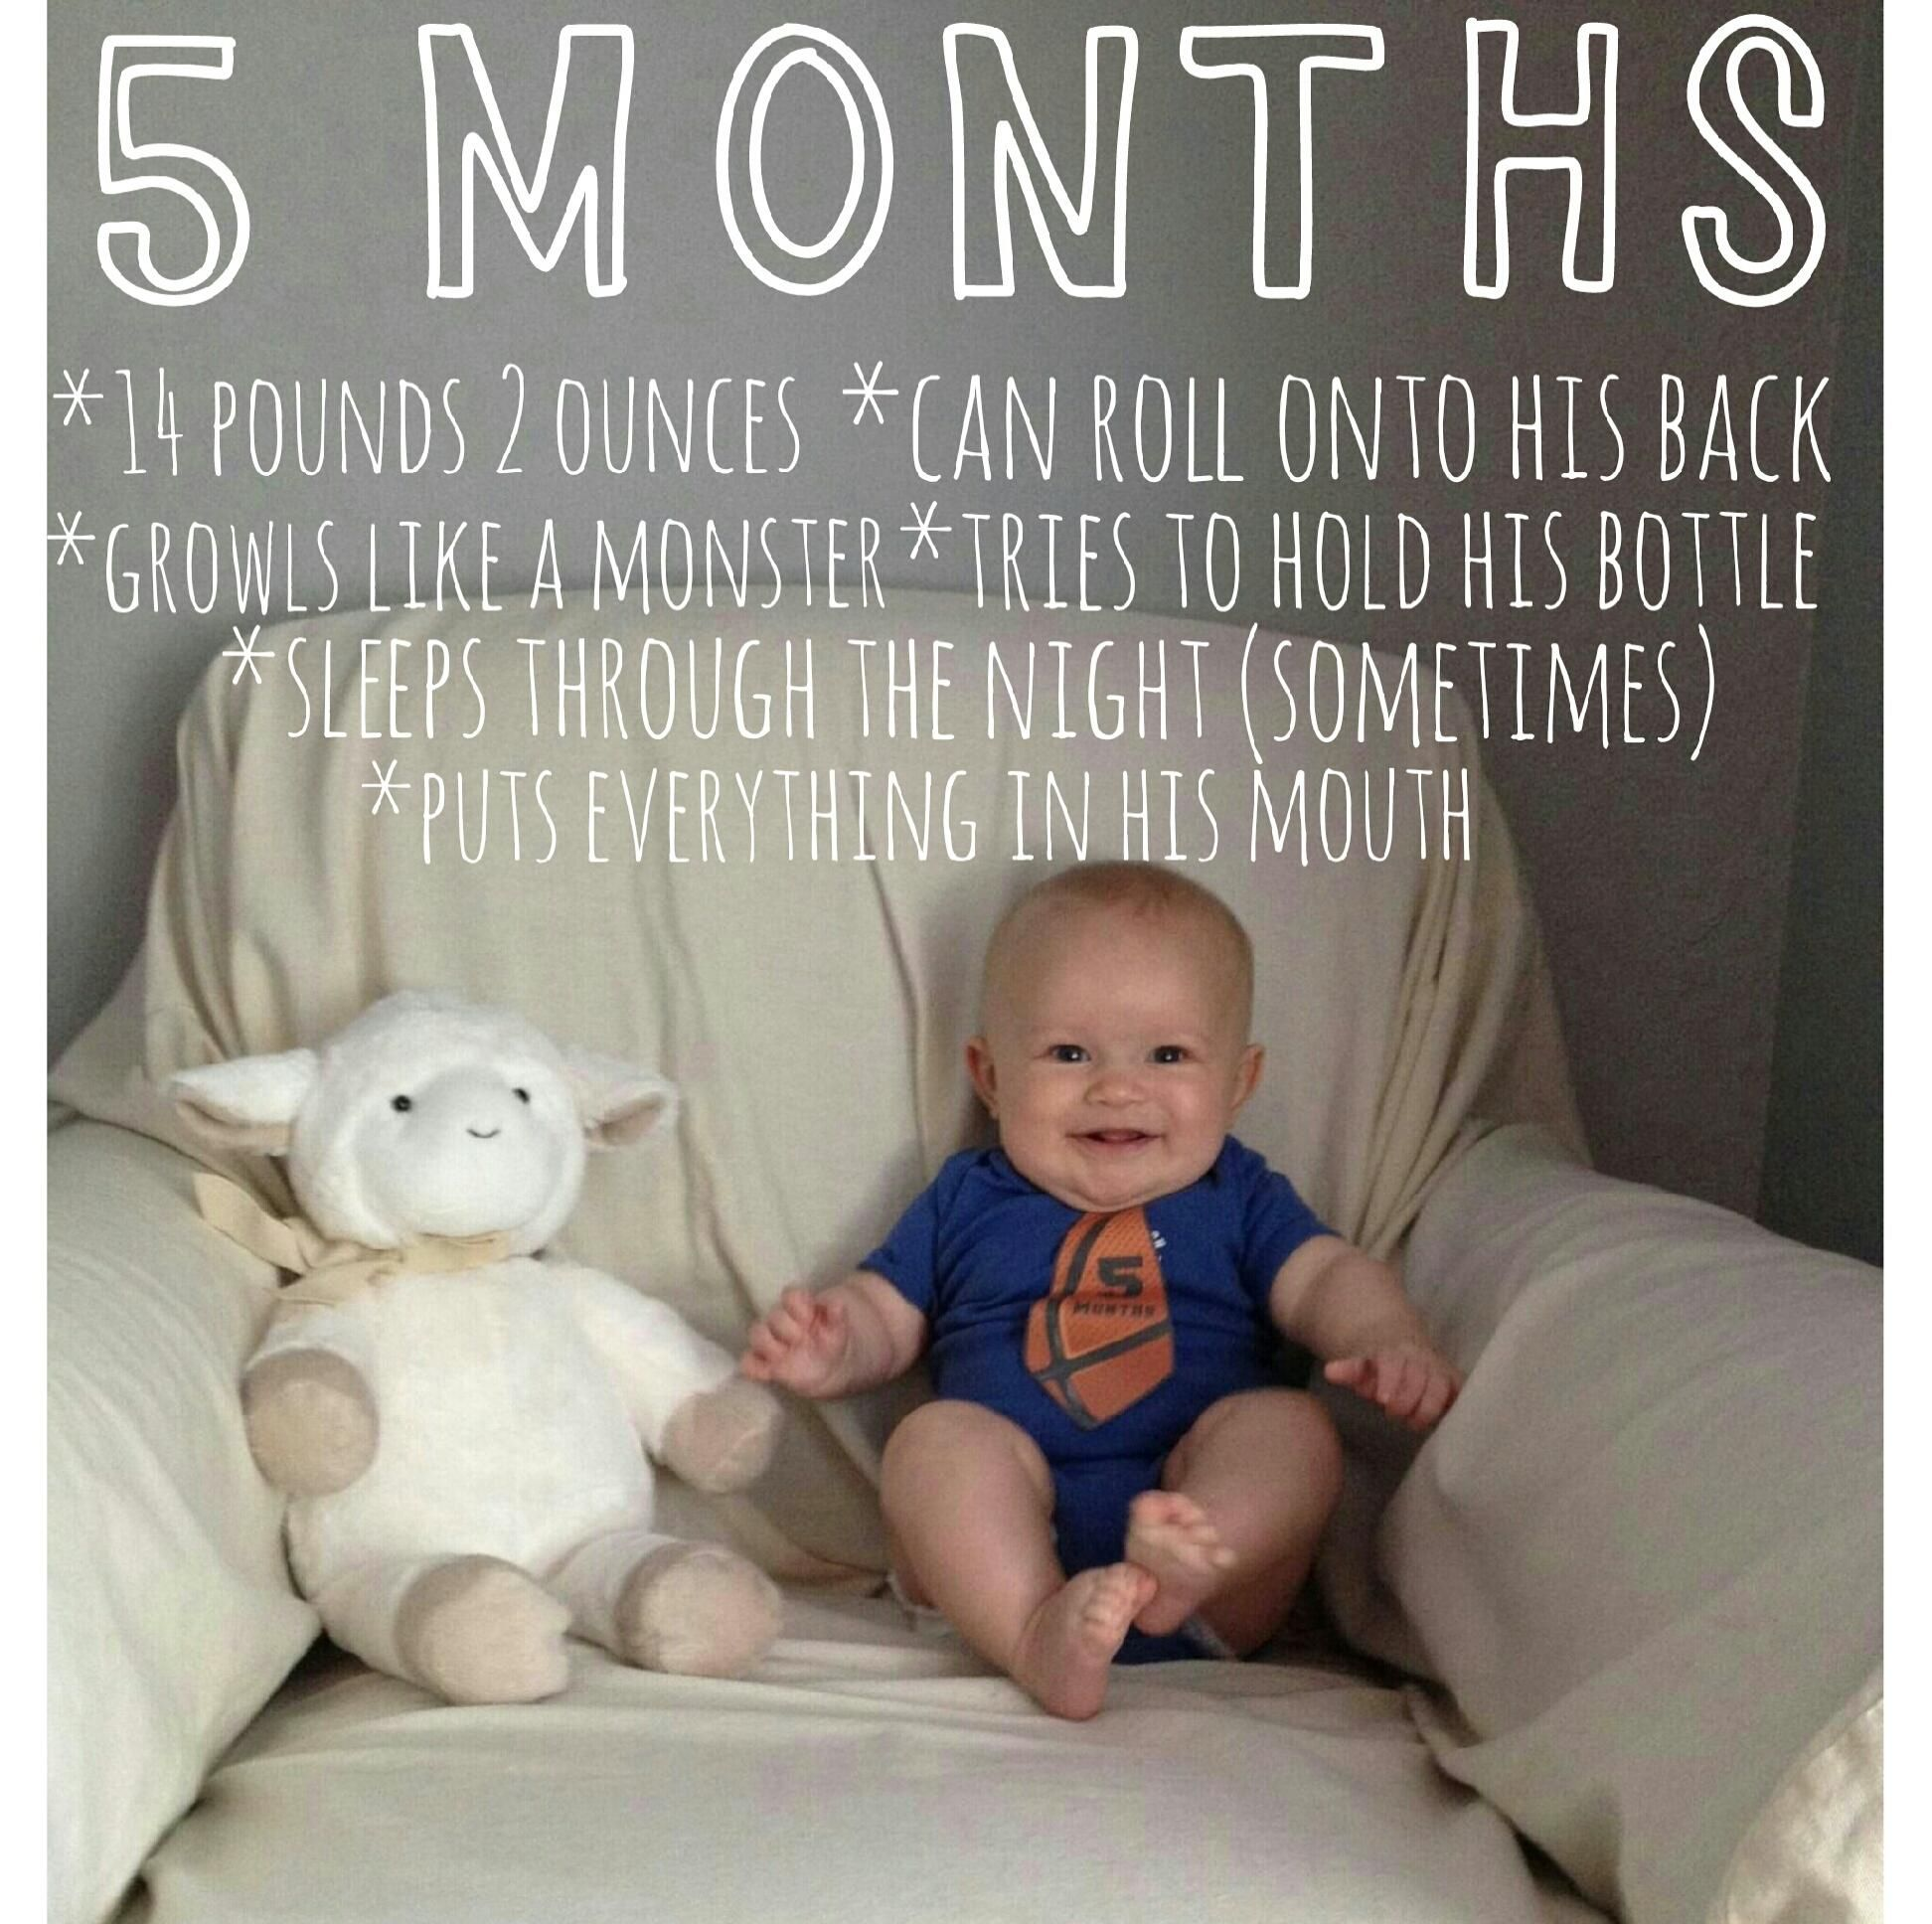 Baby Monthly Picture 5 Months Old